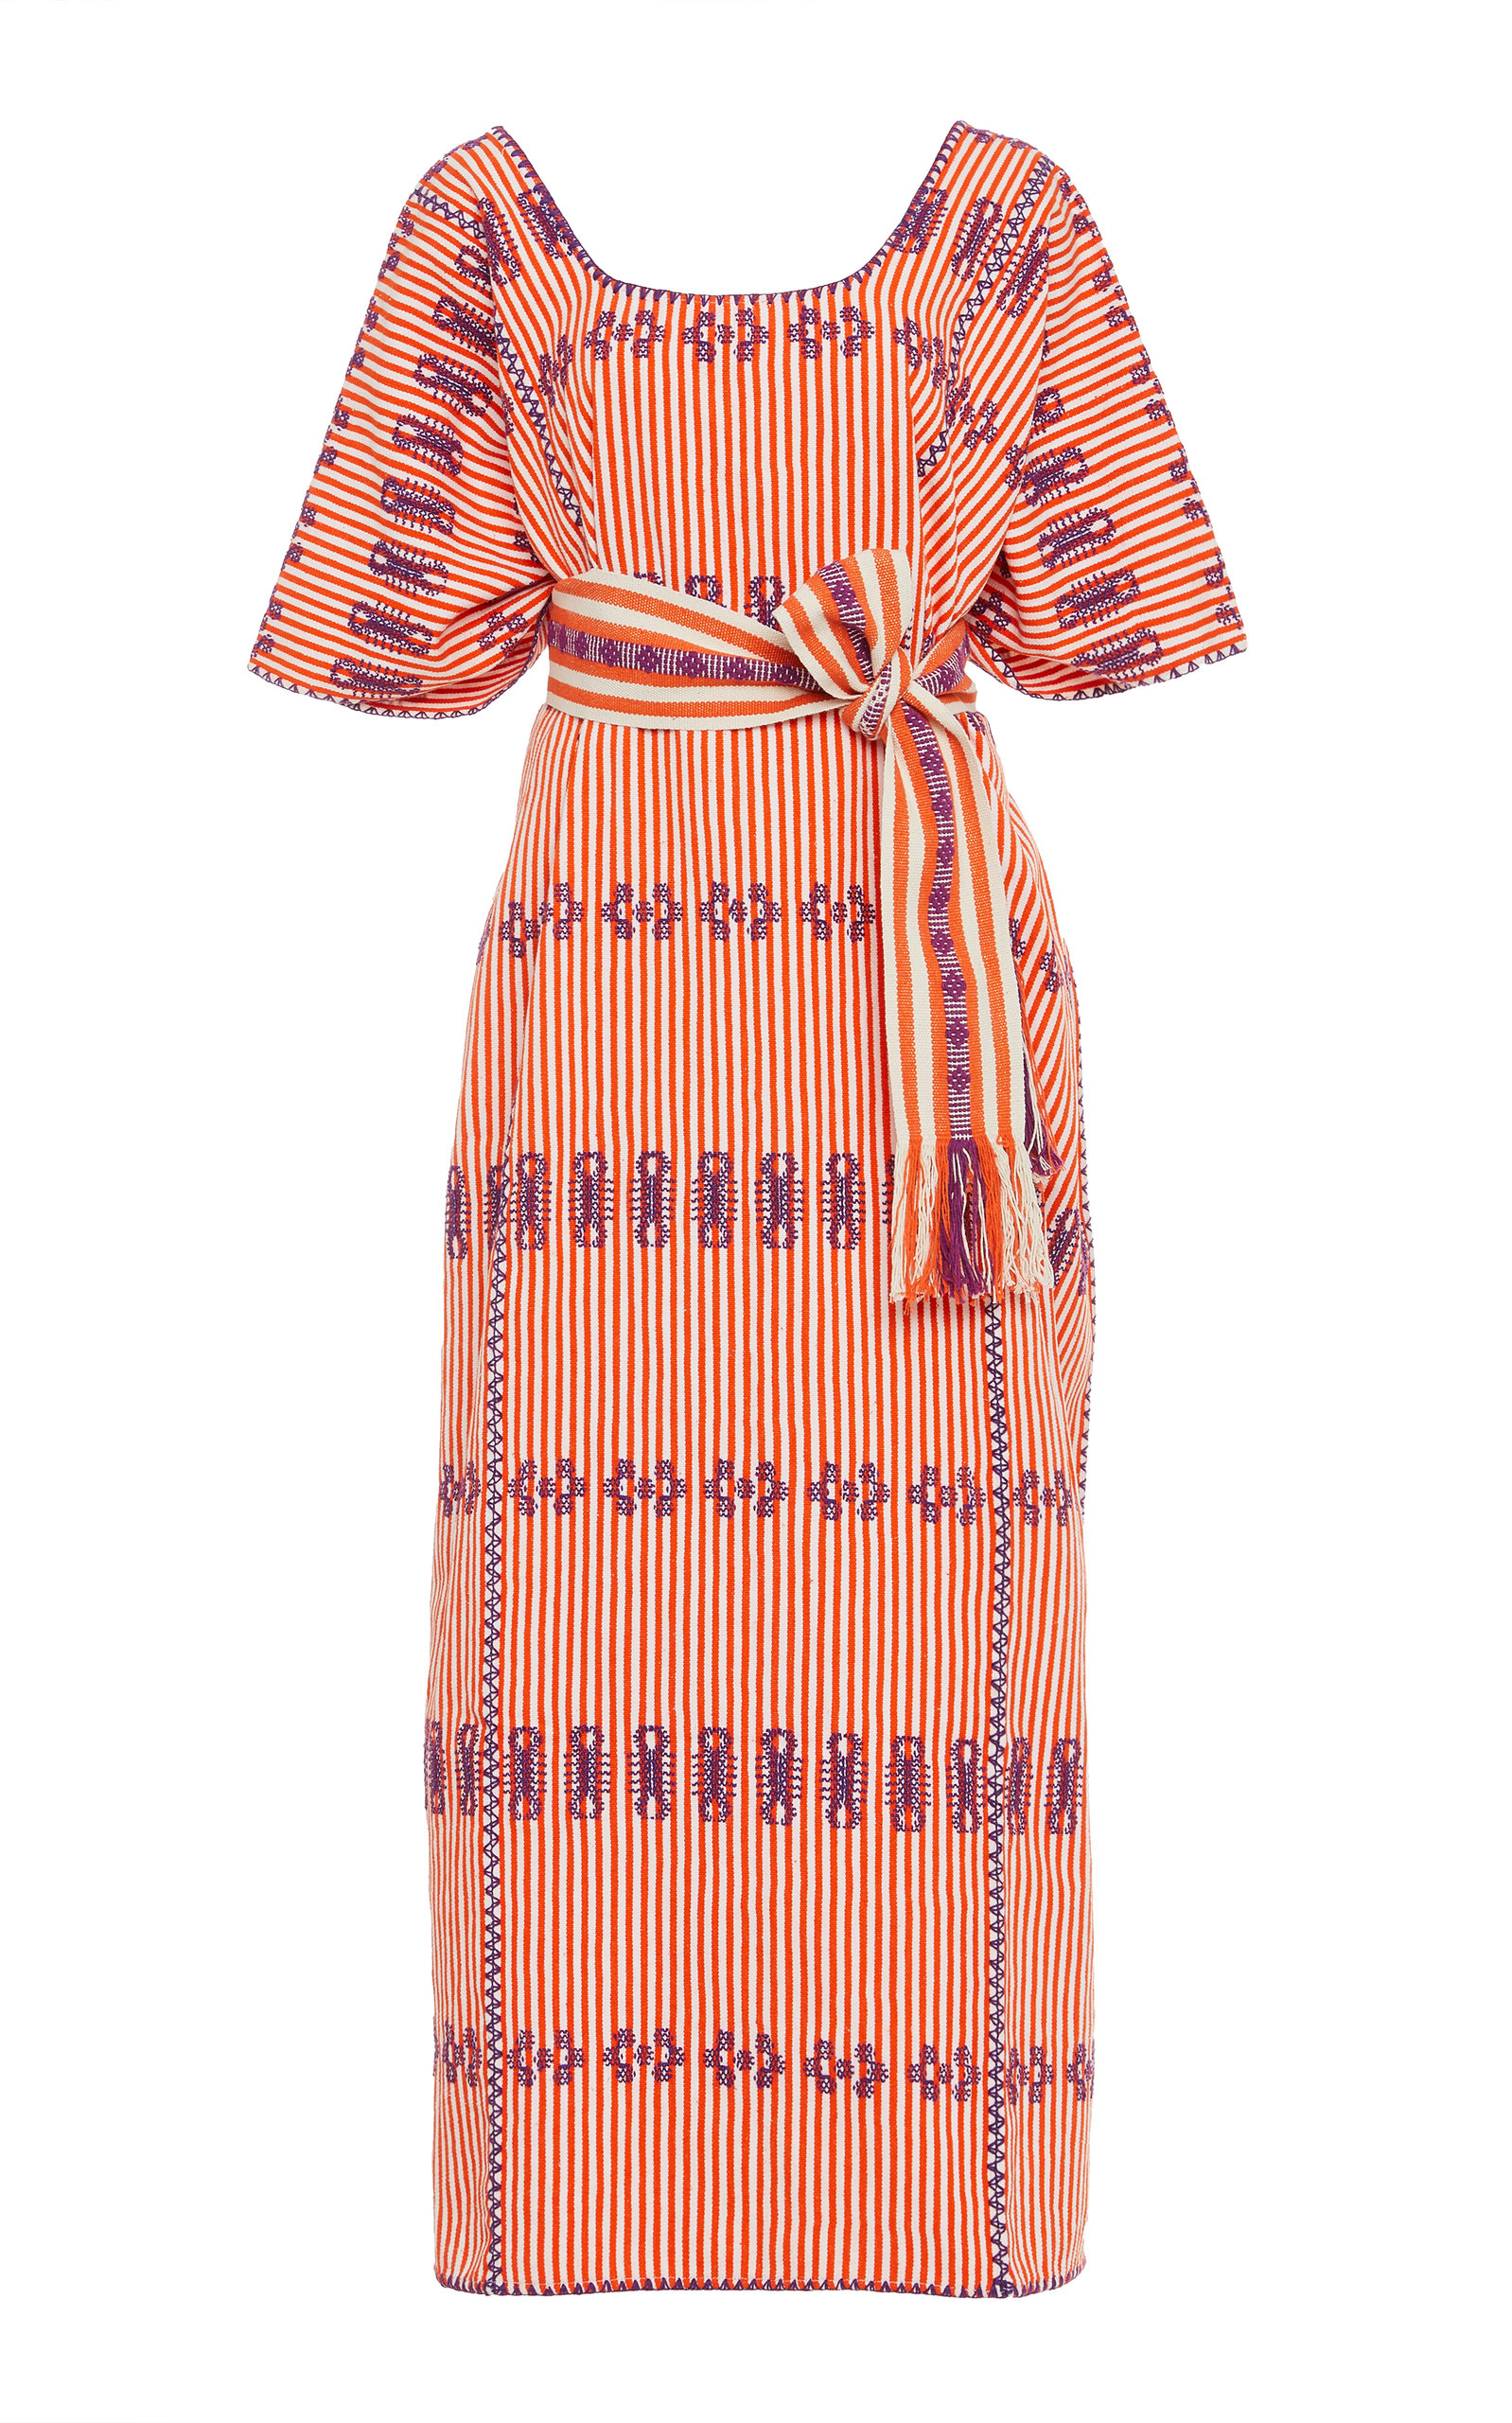 Pippa Holt Dresses STRIPED EMBROIDERED MIDI DRESS